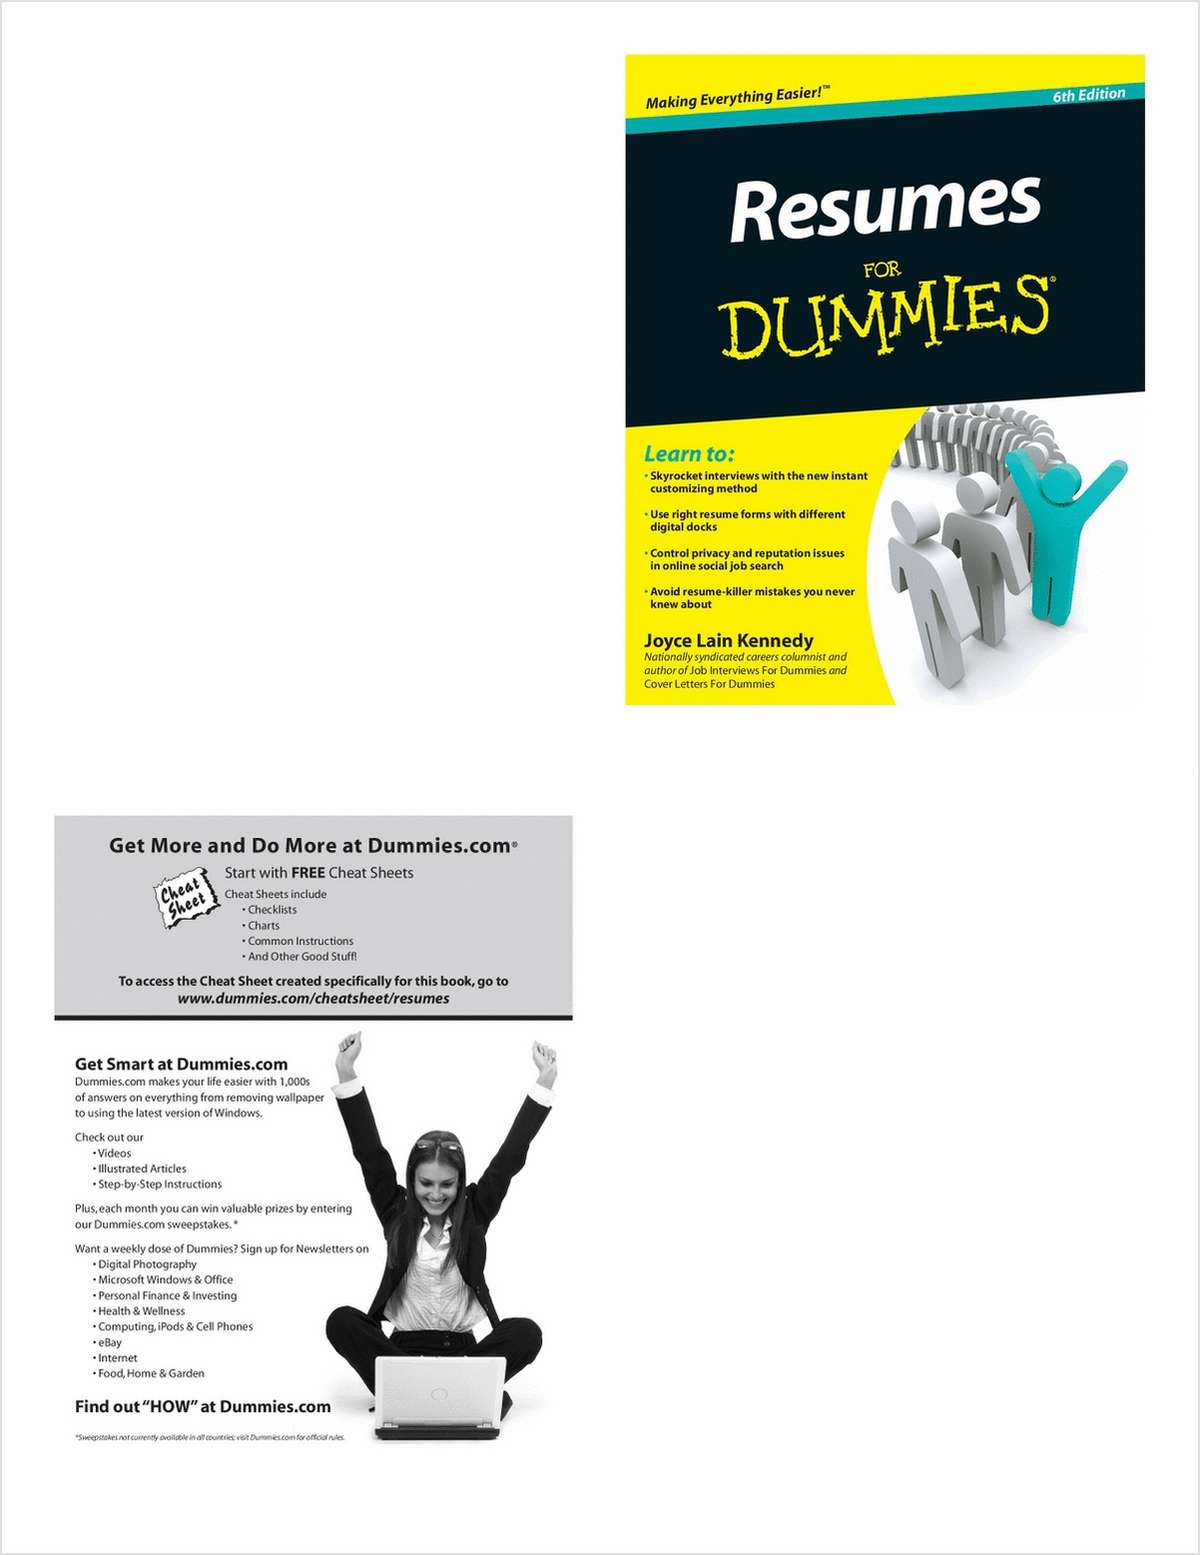 resumes for dummies 6th edition free sample chapter free wiley book excerpt - Resumes For Dummies